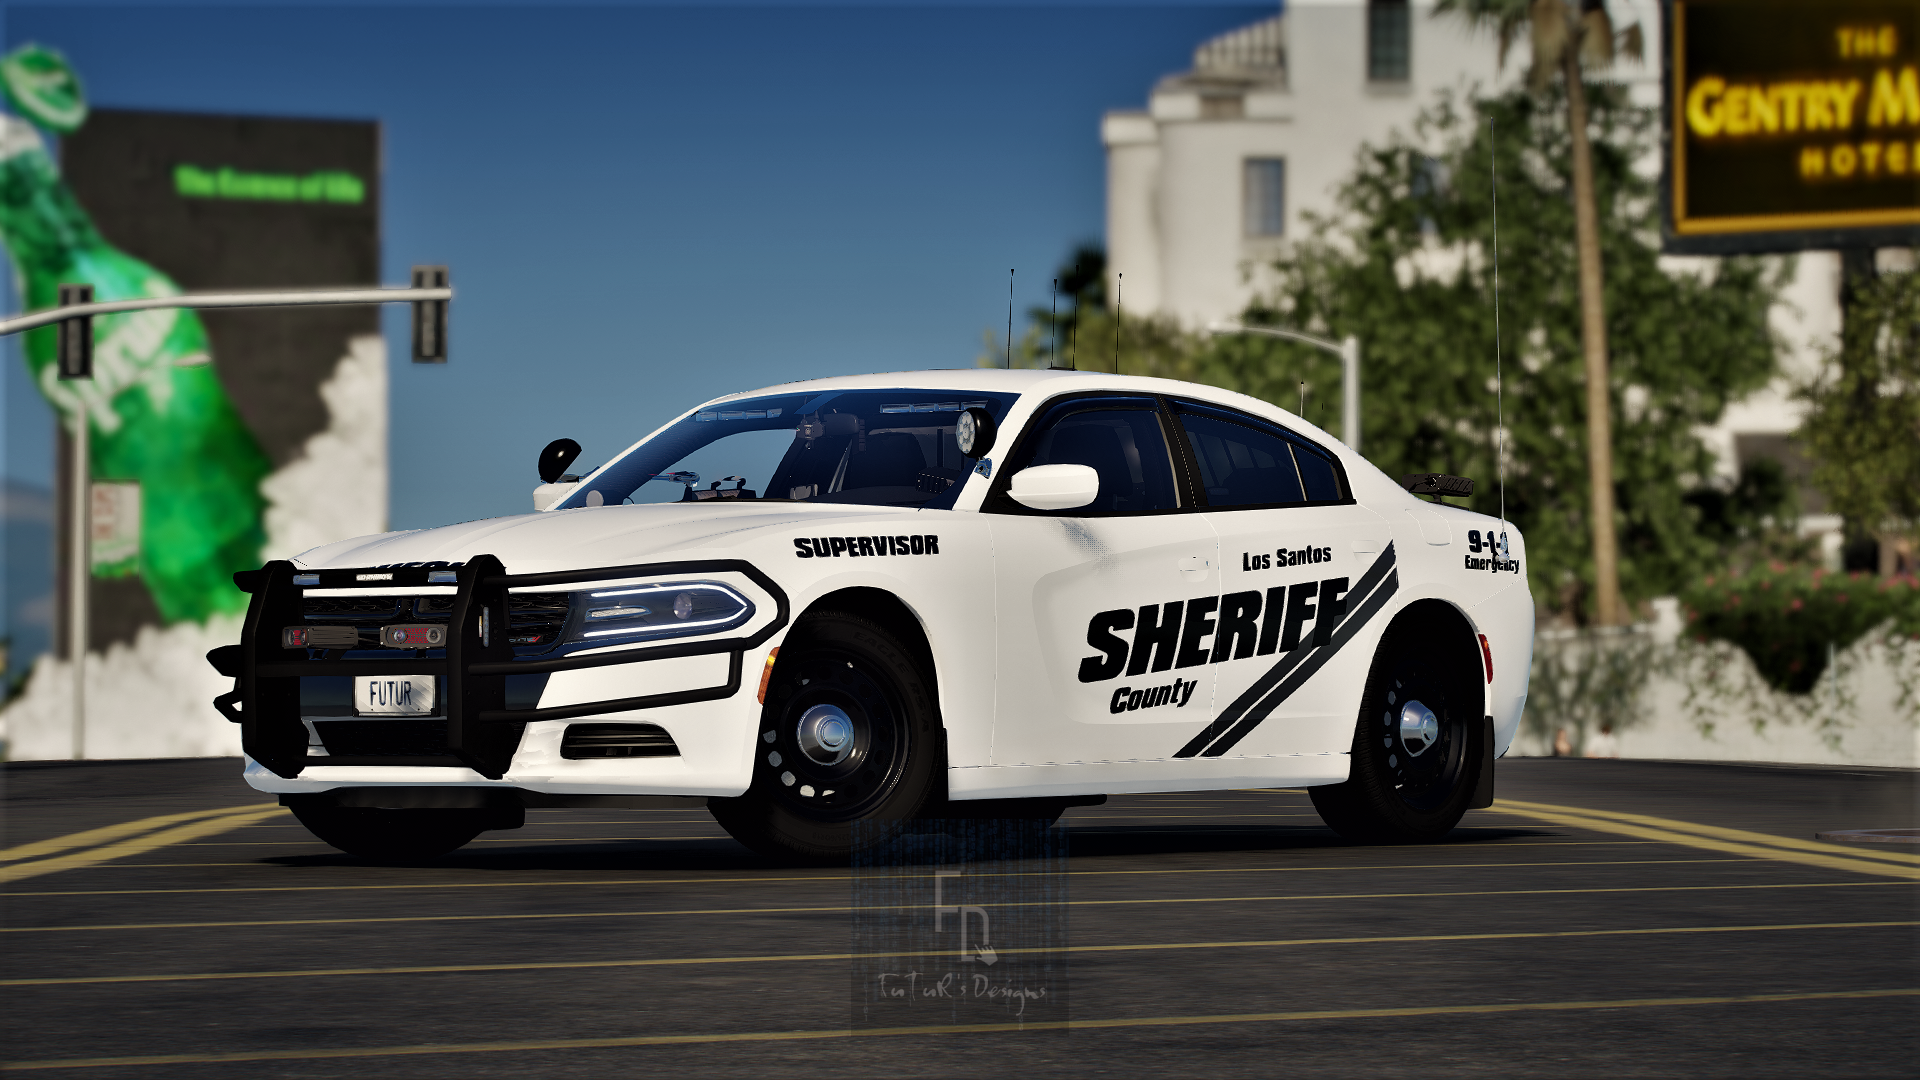 Grand_Theft_Auto_V_10_09_2021_16_43_30.png